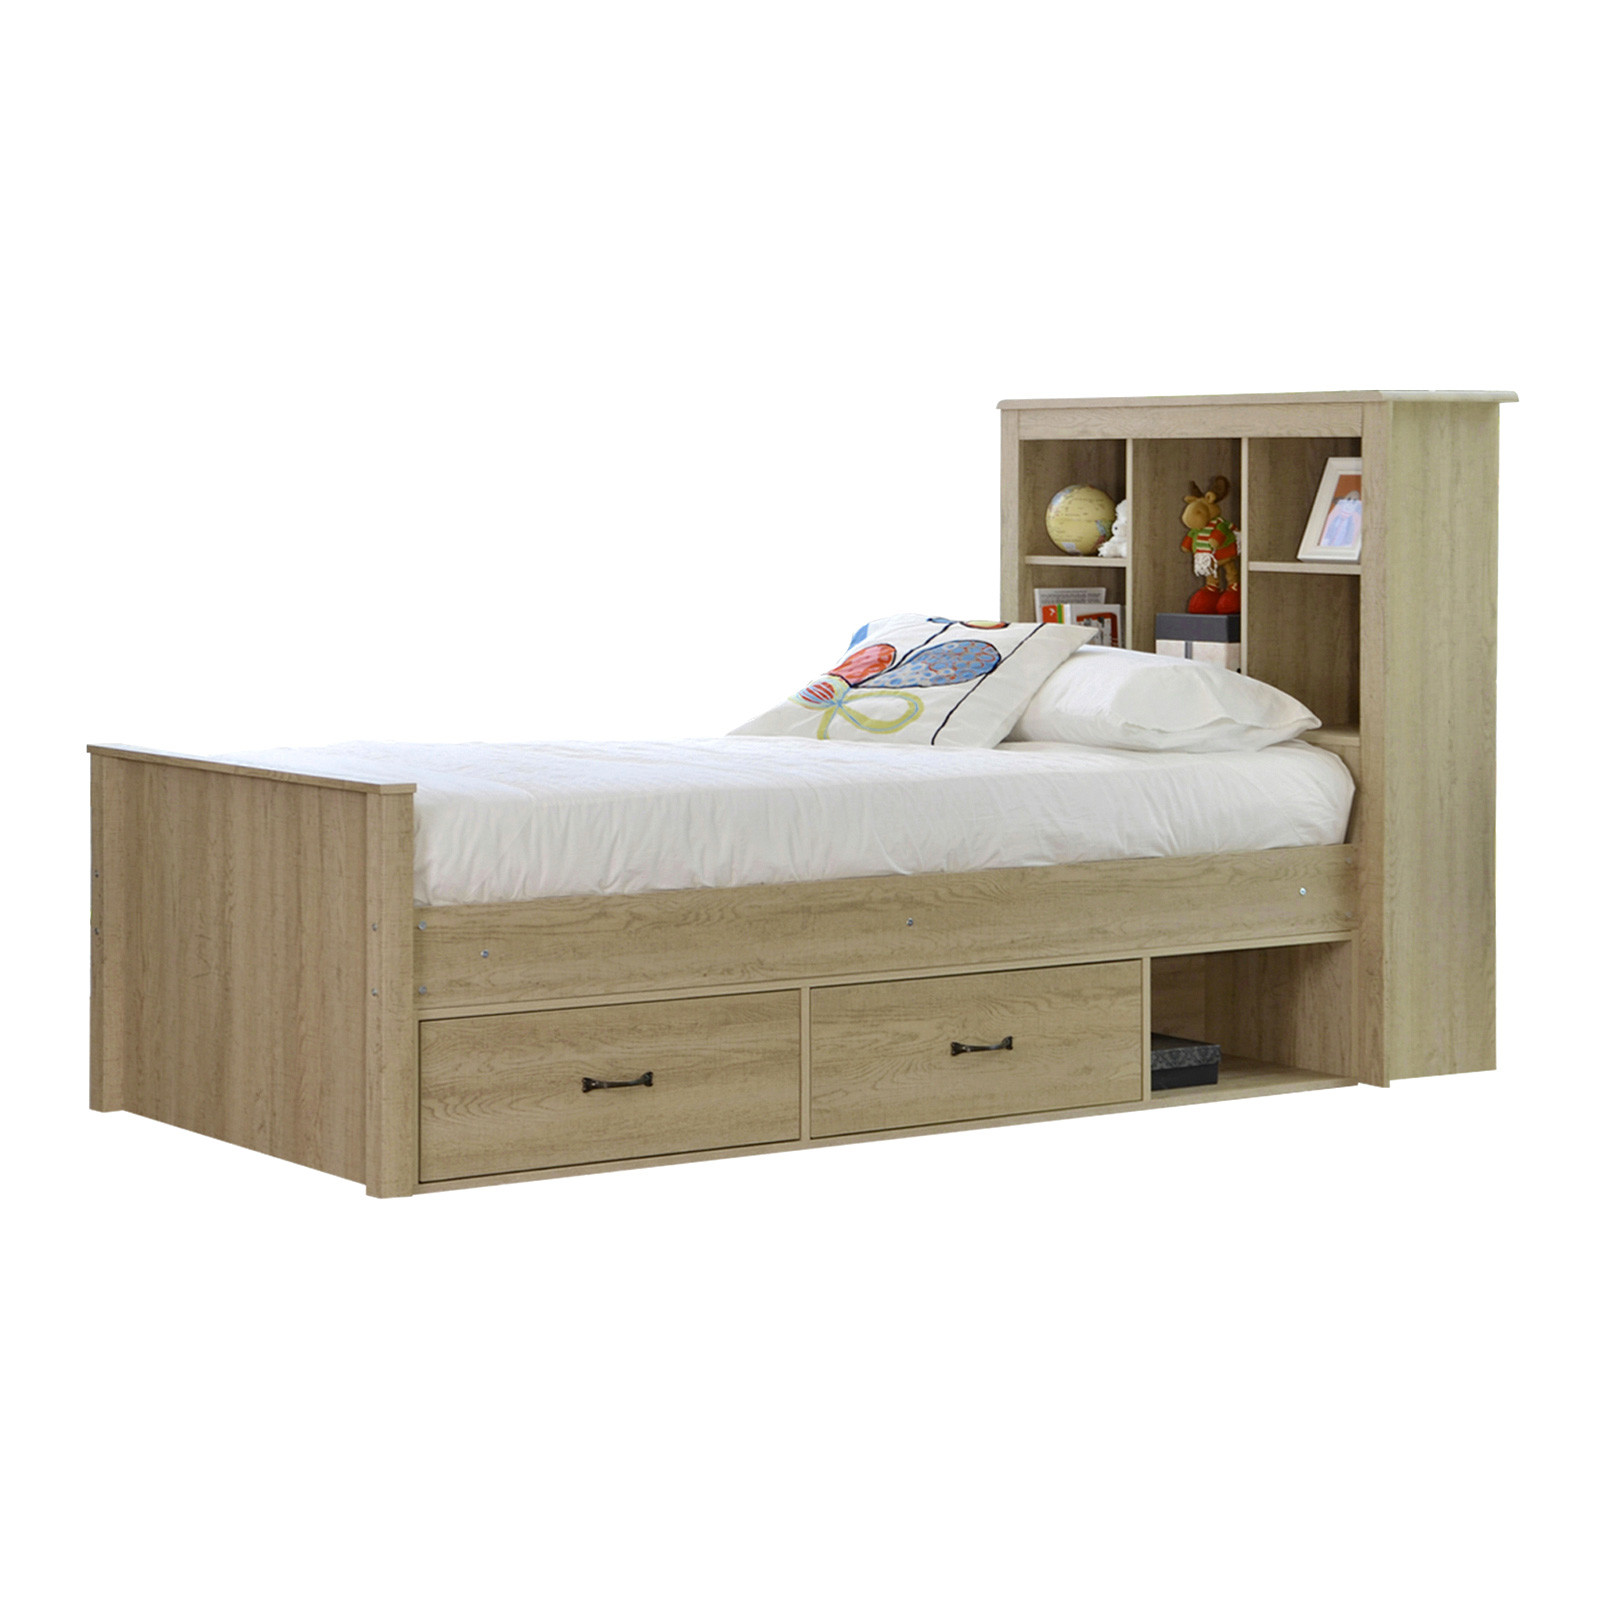 Details About New Jeppe Oak King Single Bed With Bookshelves Drawers Vic Furniture Beds